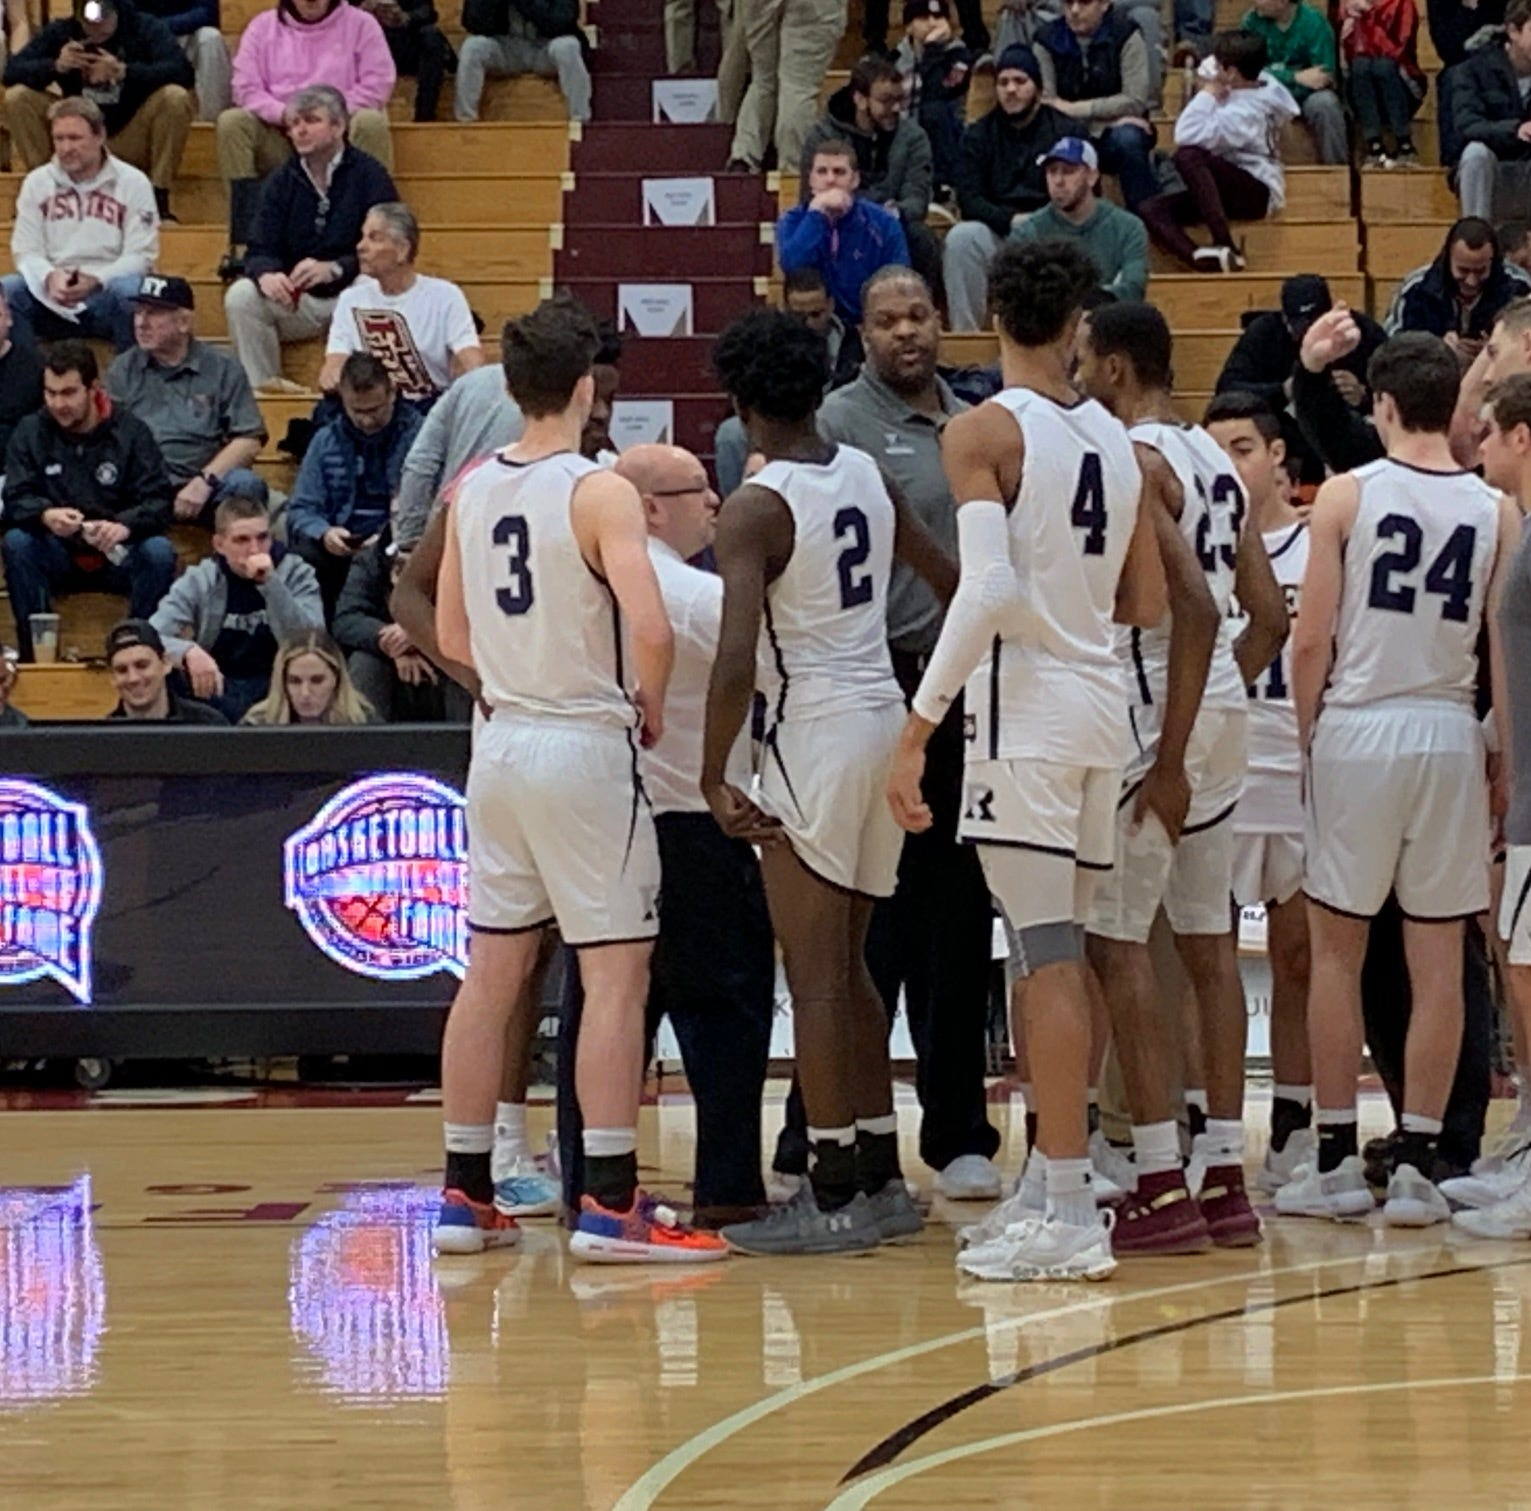 Hoophall Classic 2019: Ranney travel odyssey ends in USA TODAY Top 15 win over Federal Way